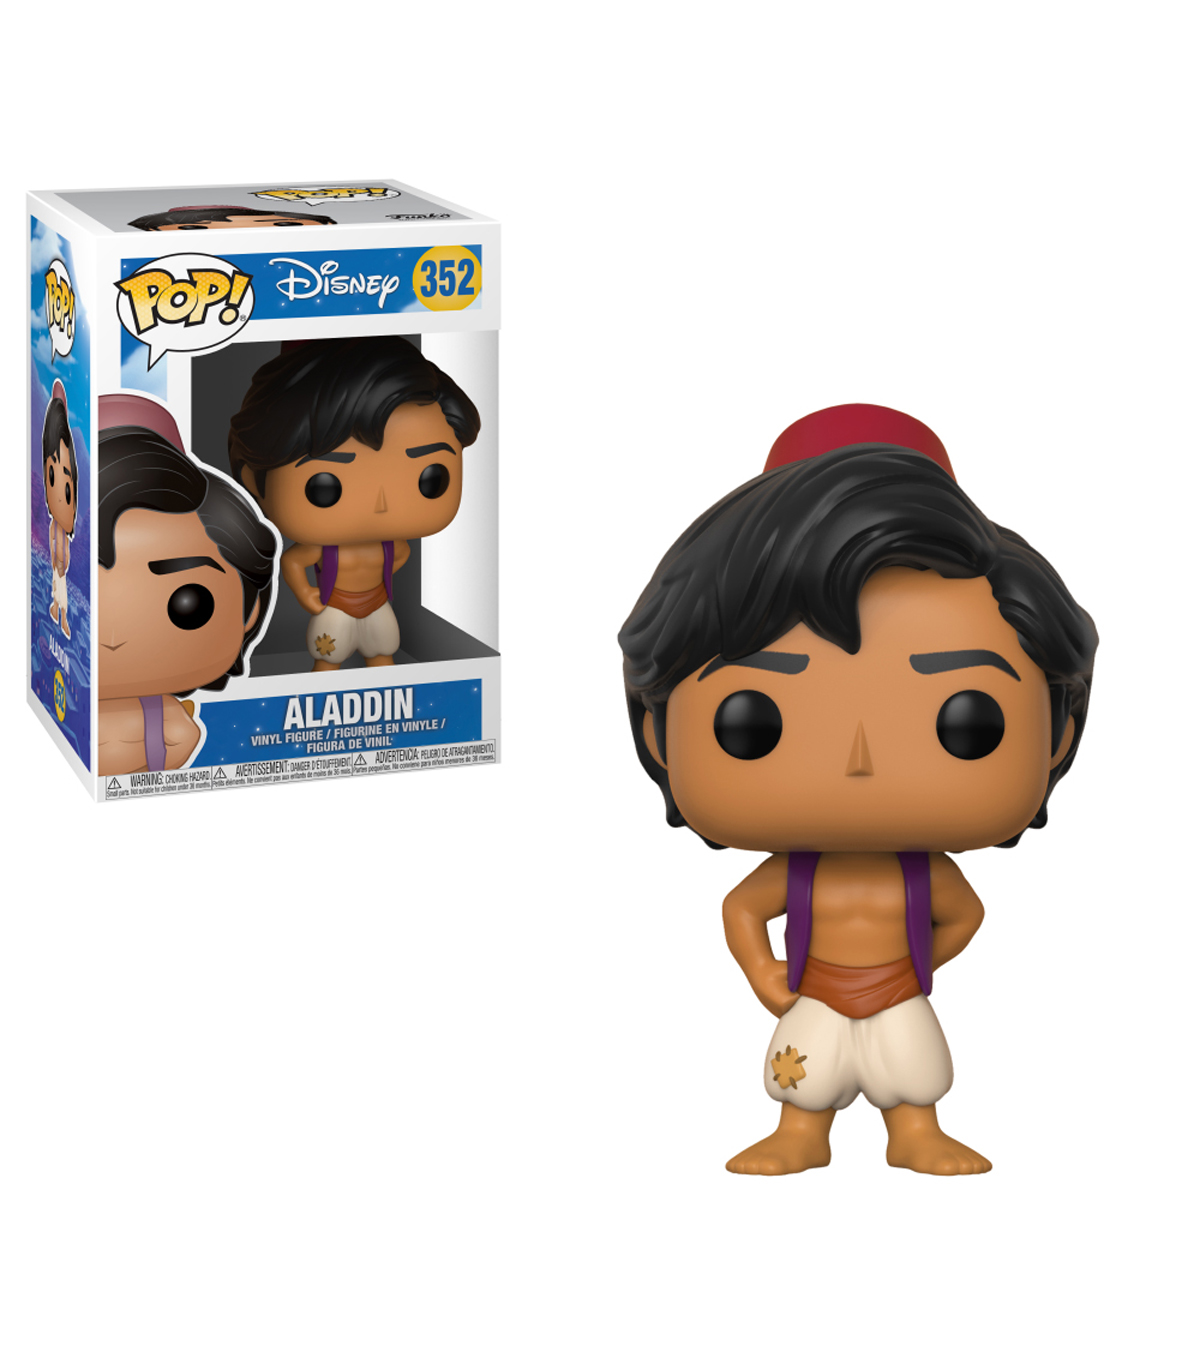 Pop! Disney Aladdin Vinyl Figure